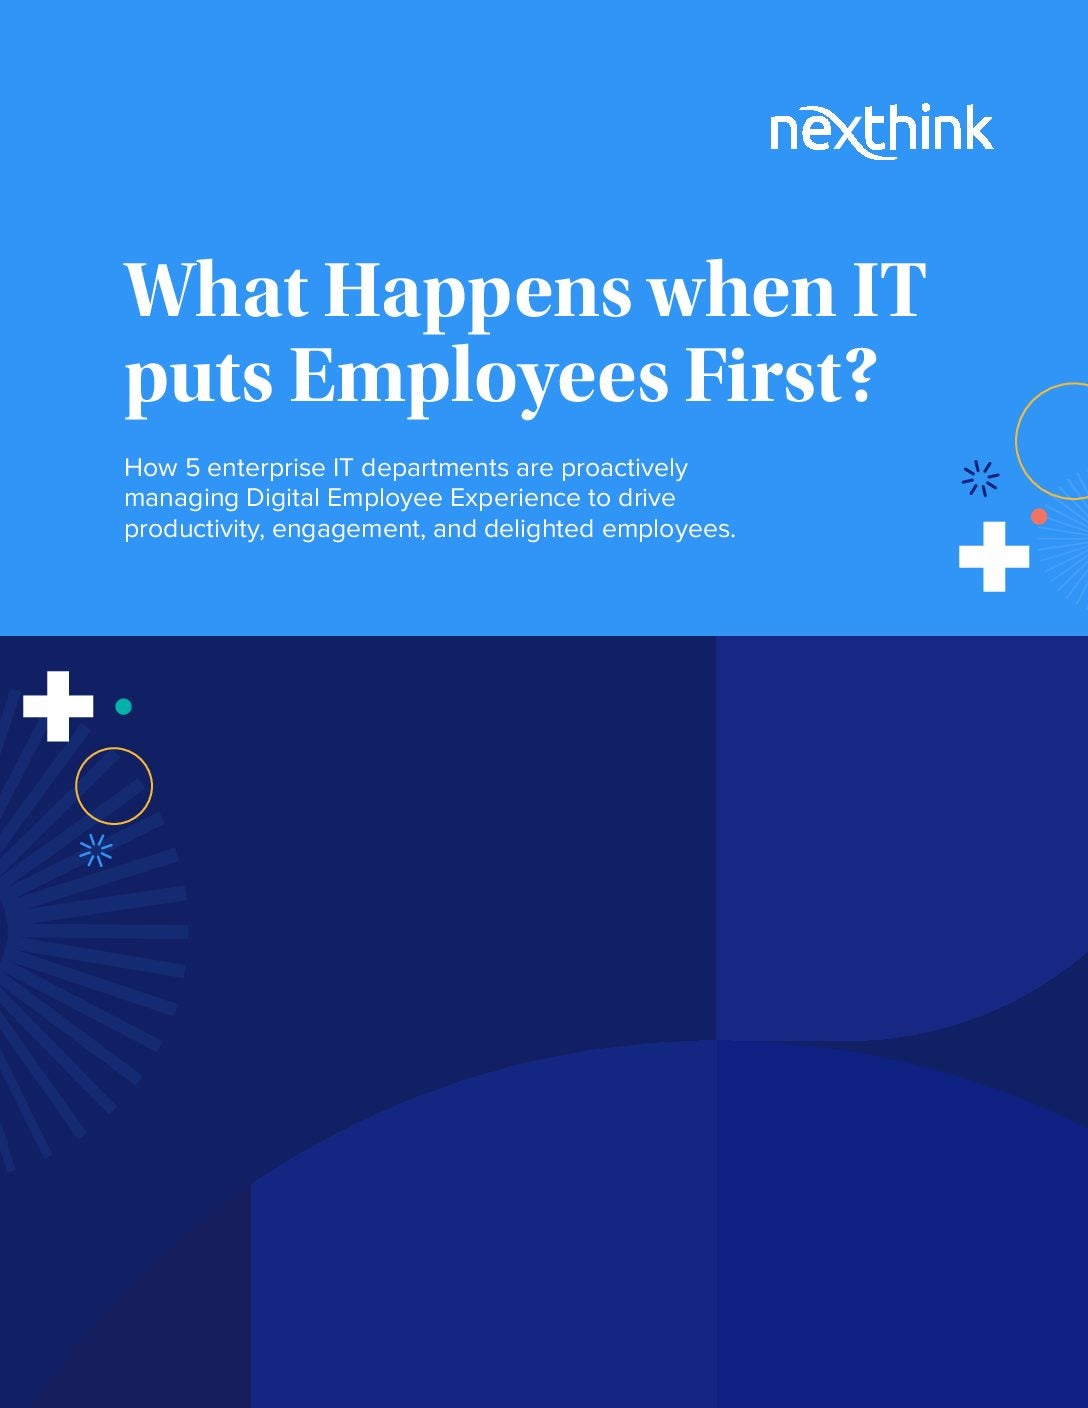 What Happens When IT Puts Employees First?